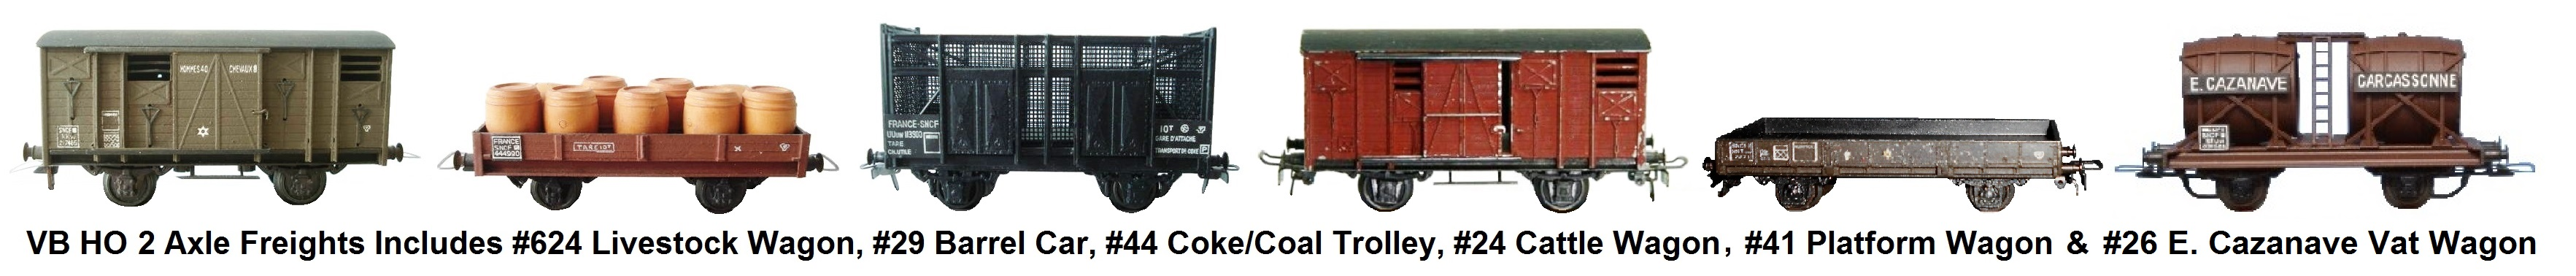 VB HO scale Industrial Style 2 Axle Freight Wagons made Of Zamac incudes #624 Livestock Wagon, #29 Barrel Car, #44 Coke/Coal Trolley, #24 Cattle Wagon, #41 Platform Wagon and #26 E. Cazanave Vat Wagon